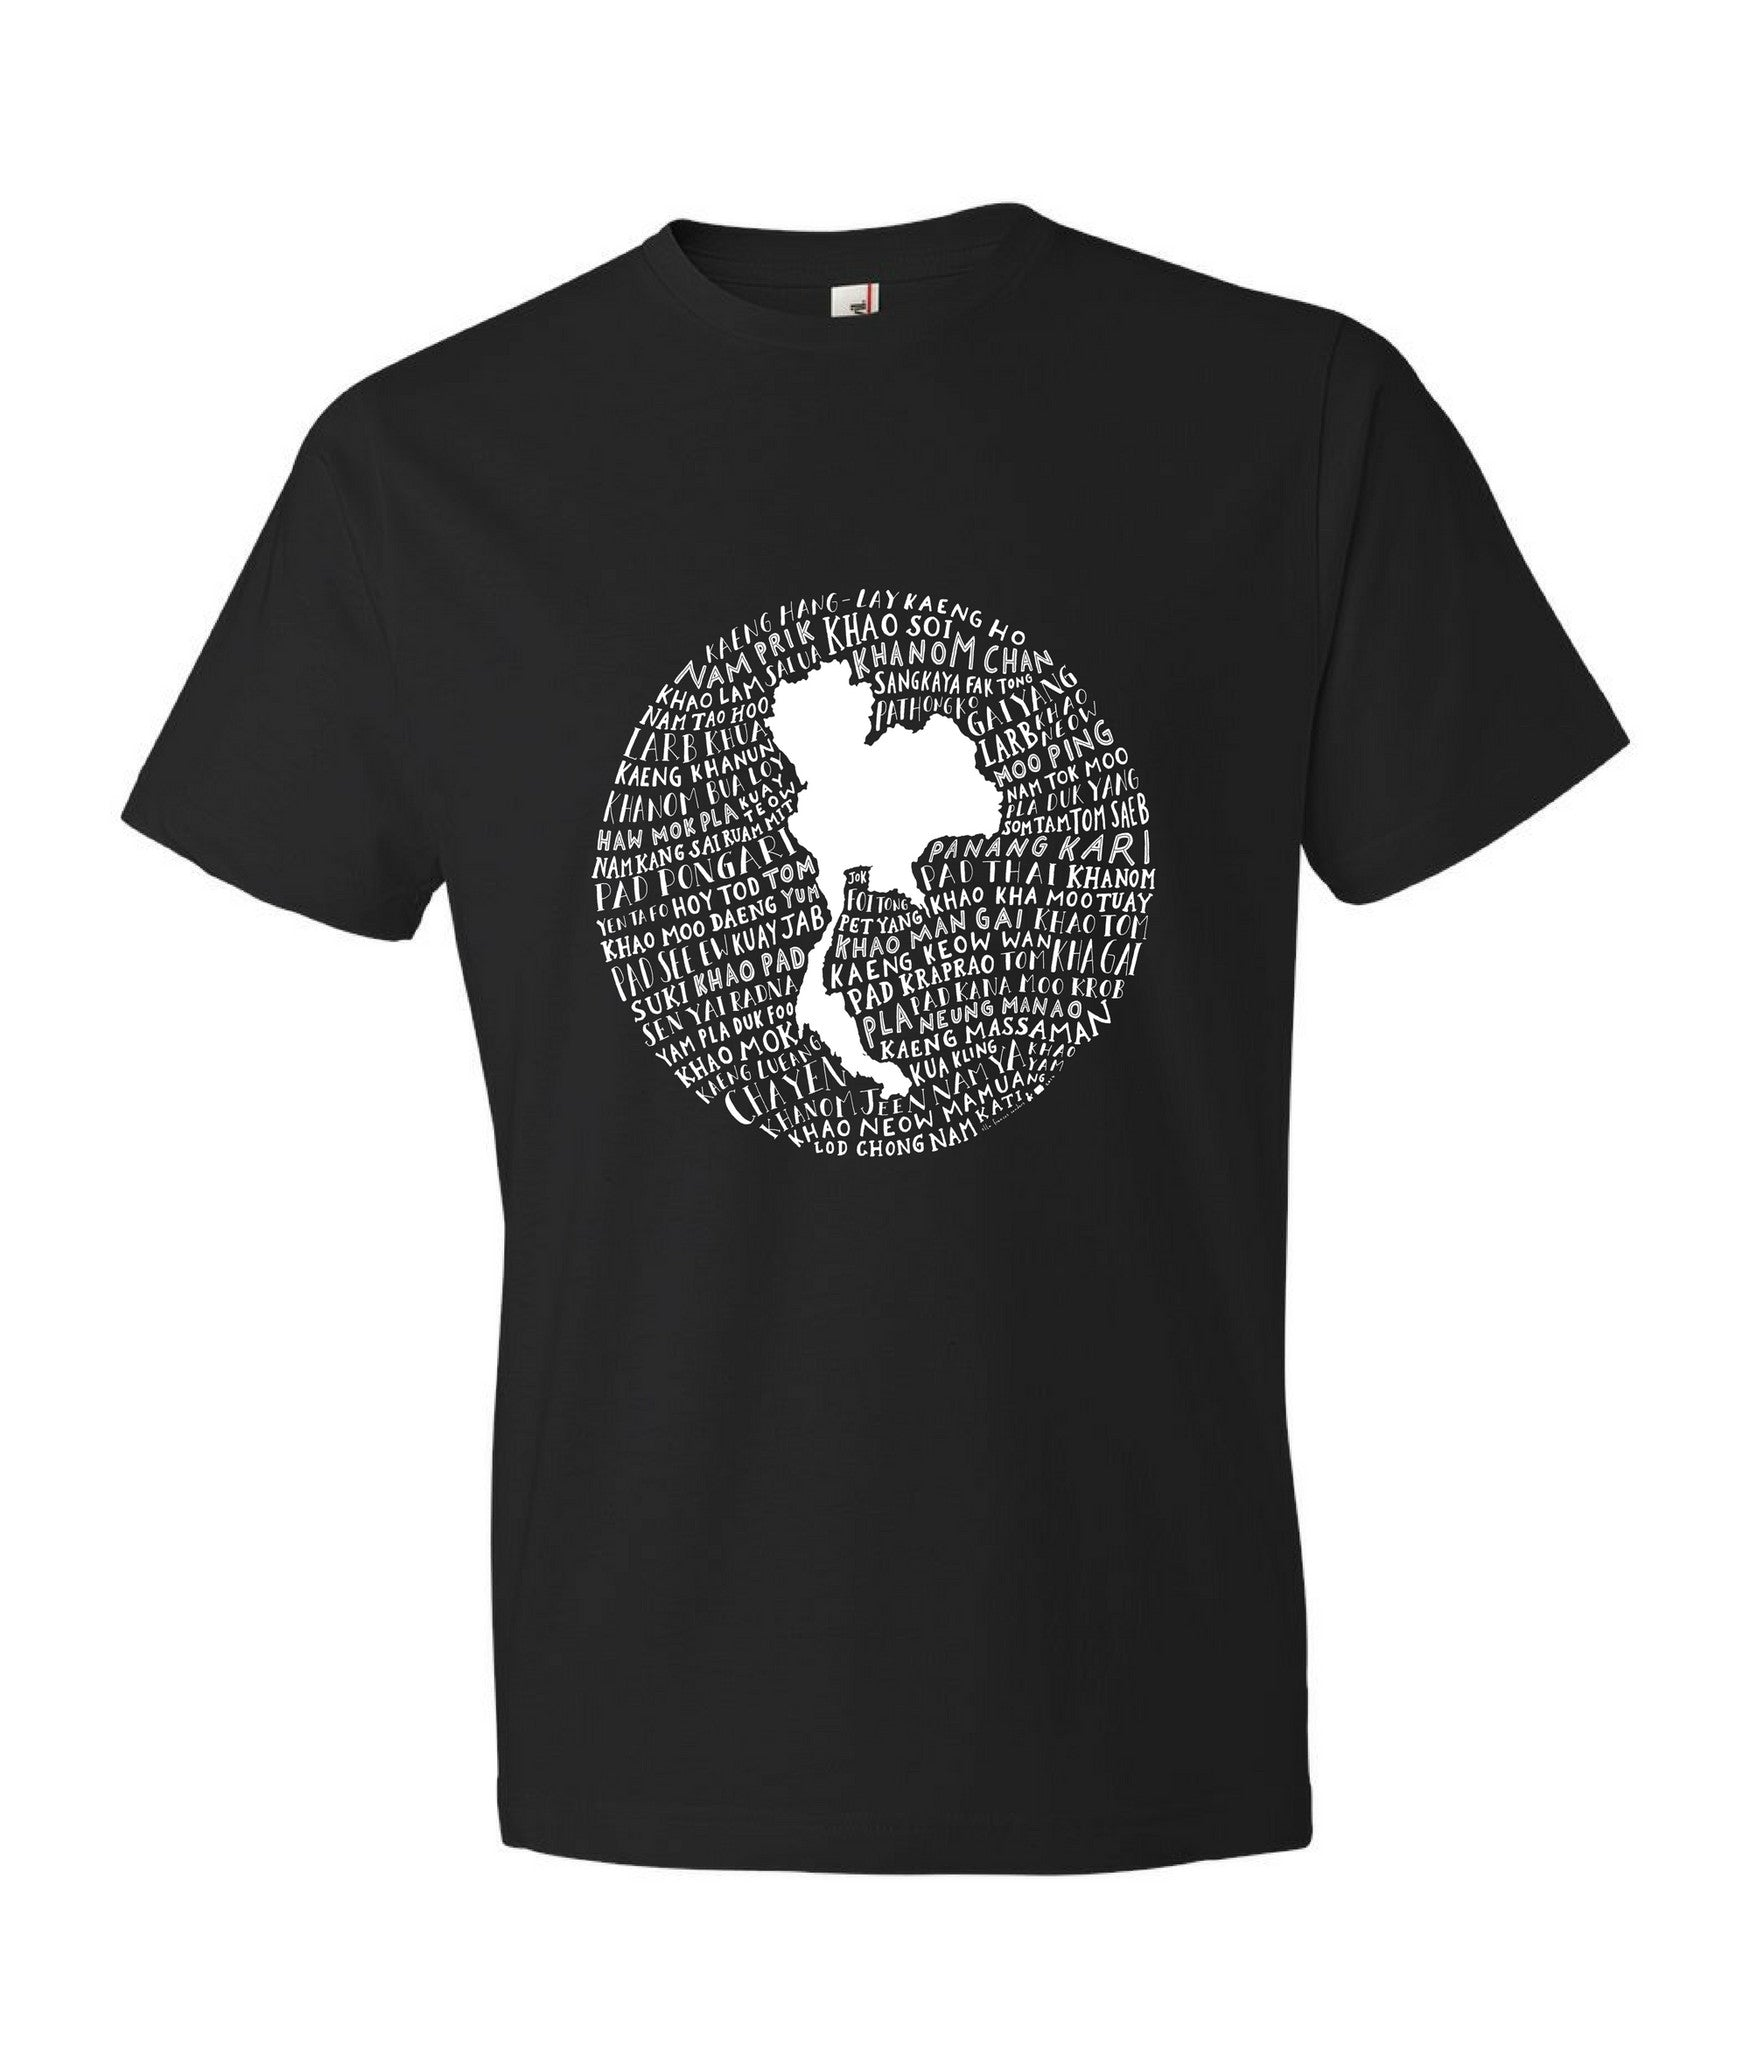 Food Map of Thailand - Men's Black Crew Neck T-Shirt